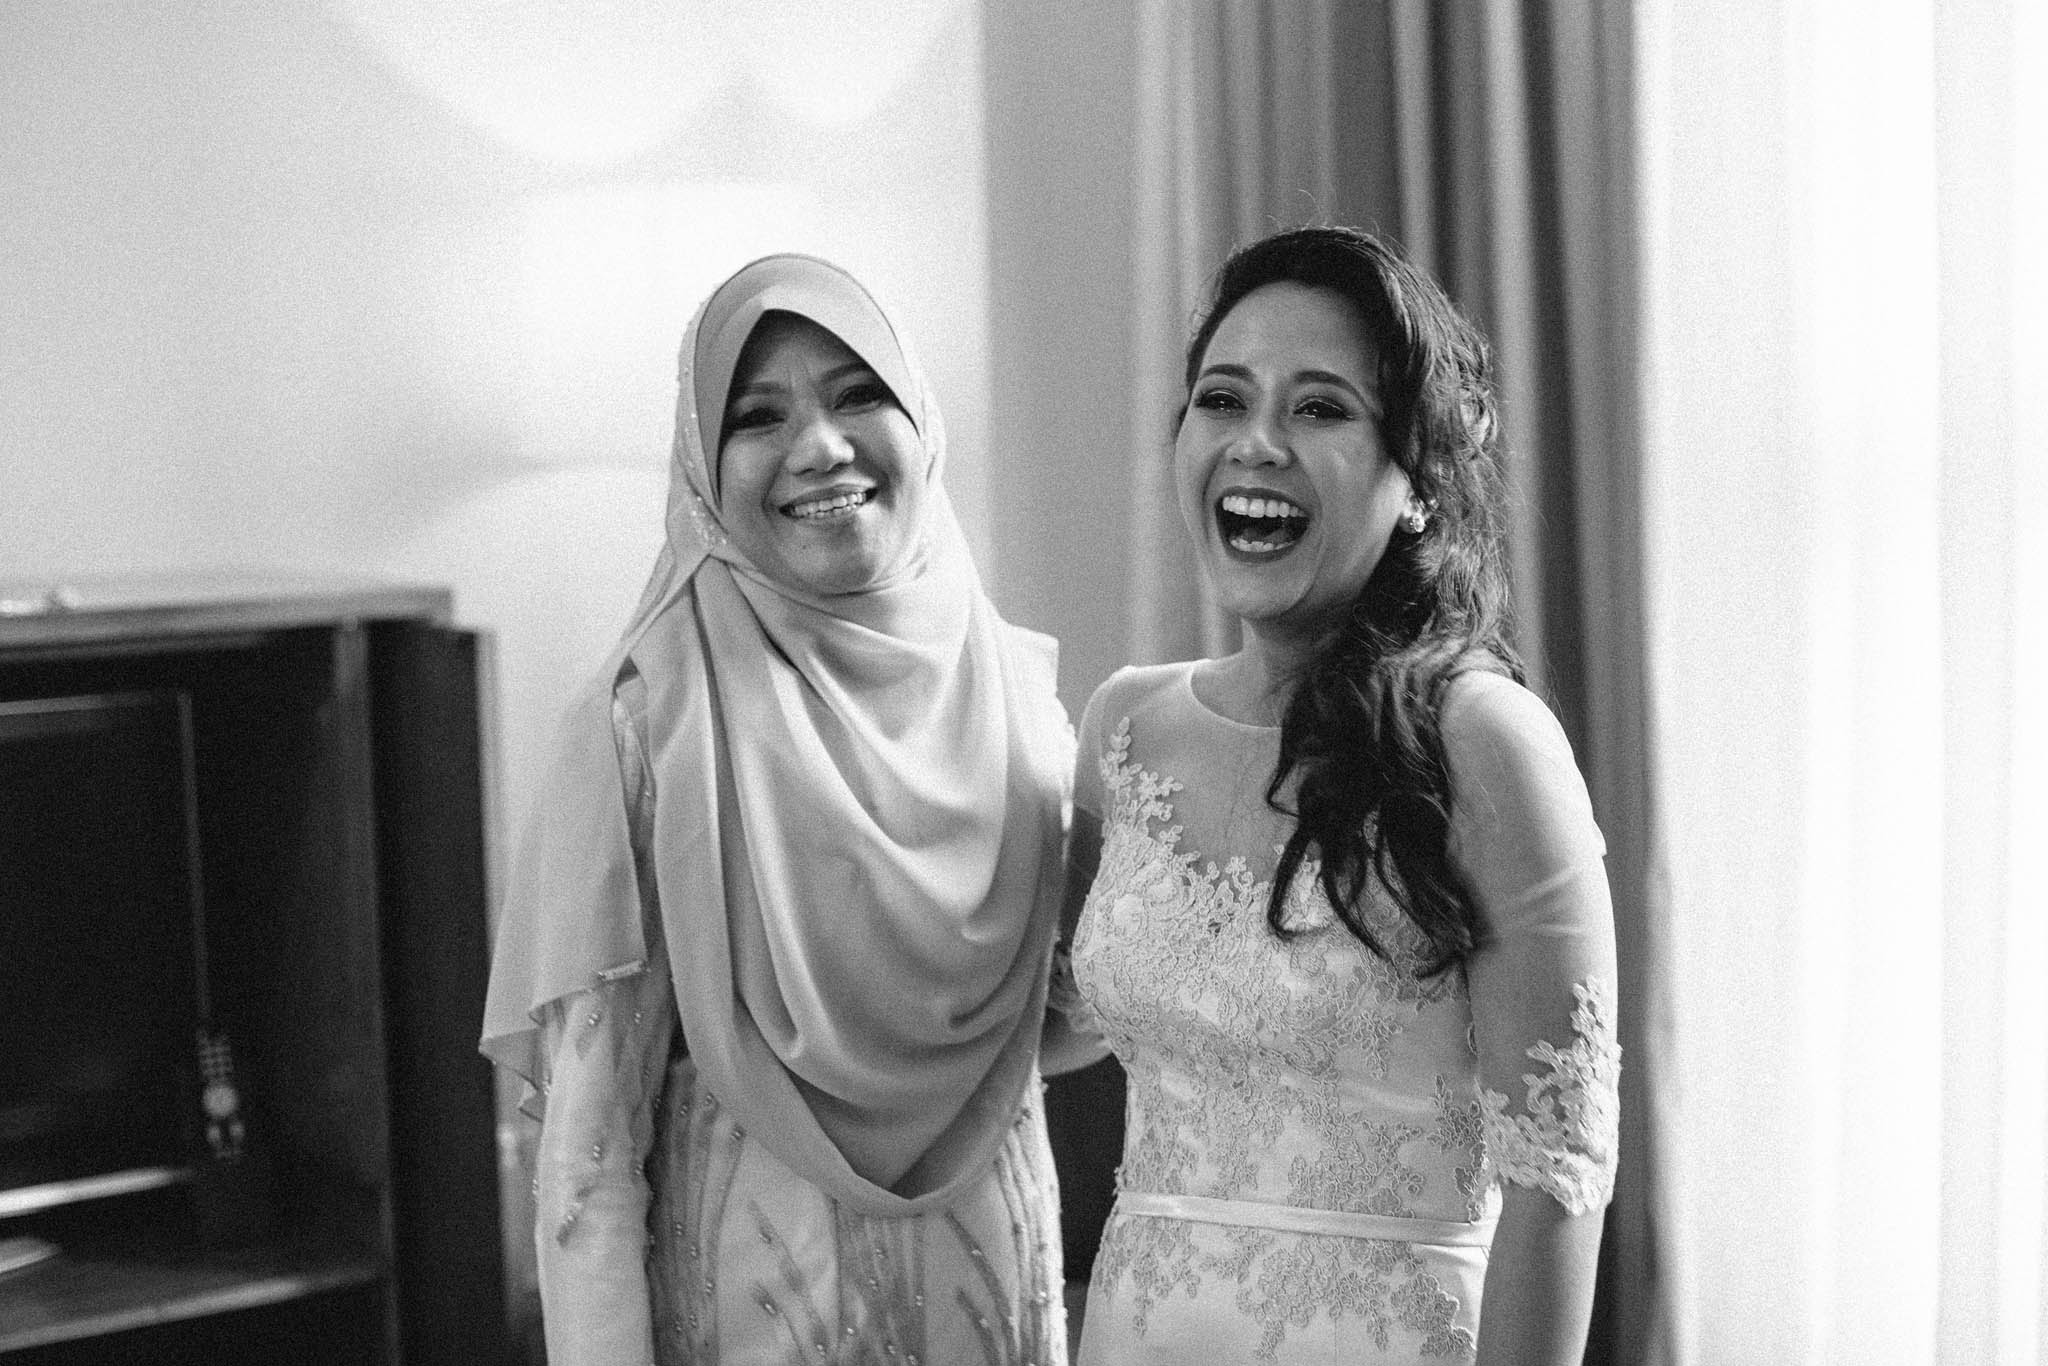 singapore-wedding-photographer-wedding-hafiana-teck-kuan-076.jpg